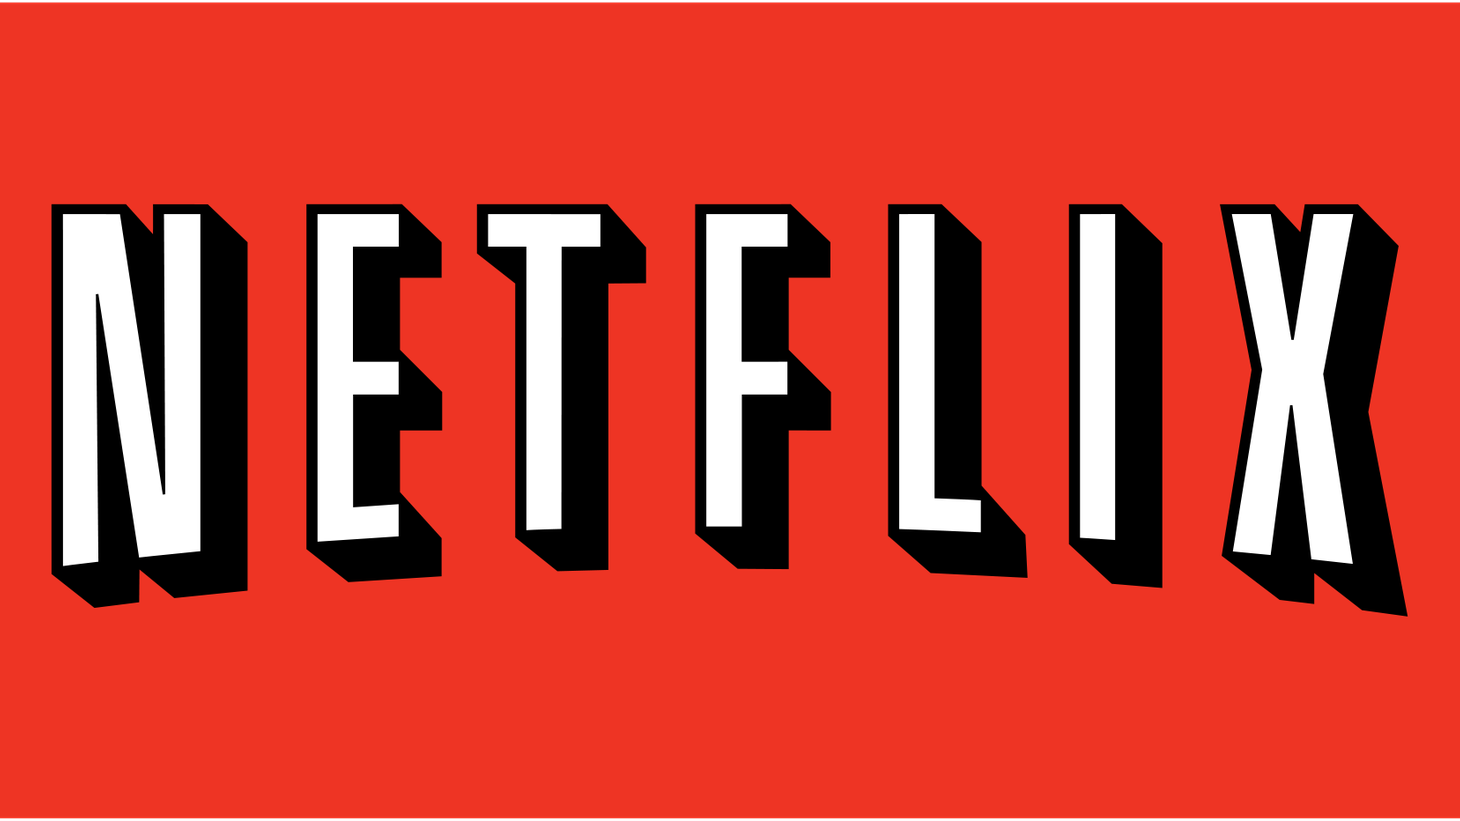 Netflix's stock sank after disappointing projections, despite strong viewership and a growing subscriber base.